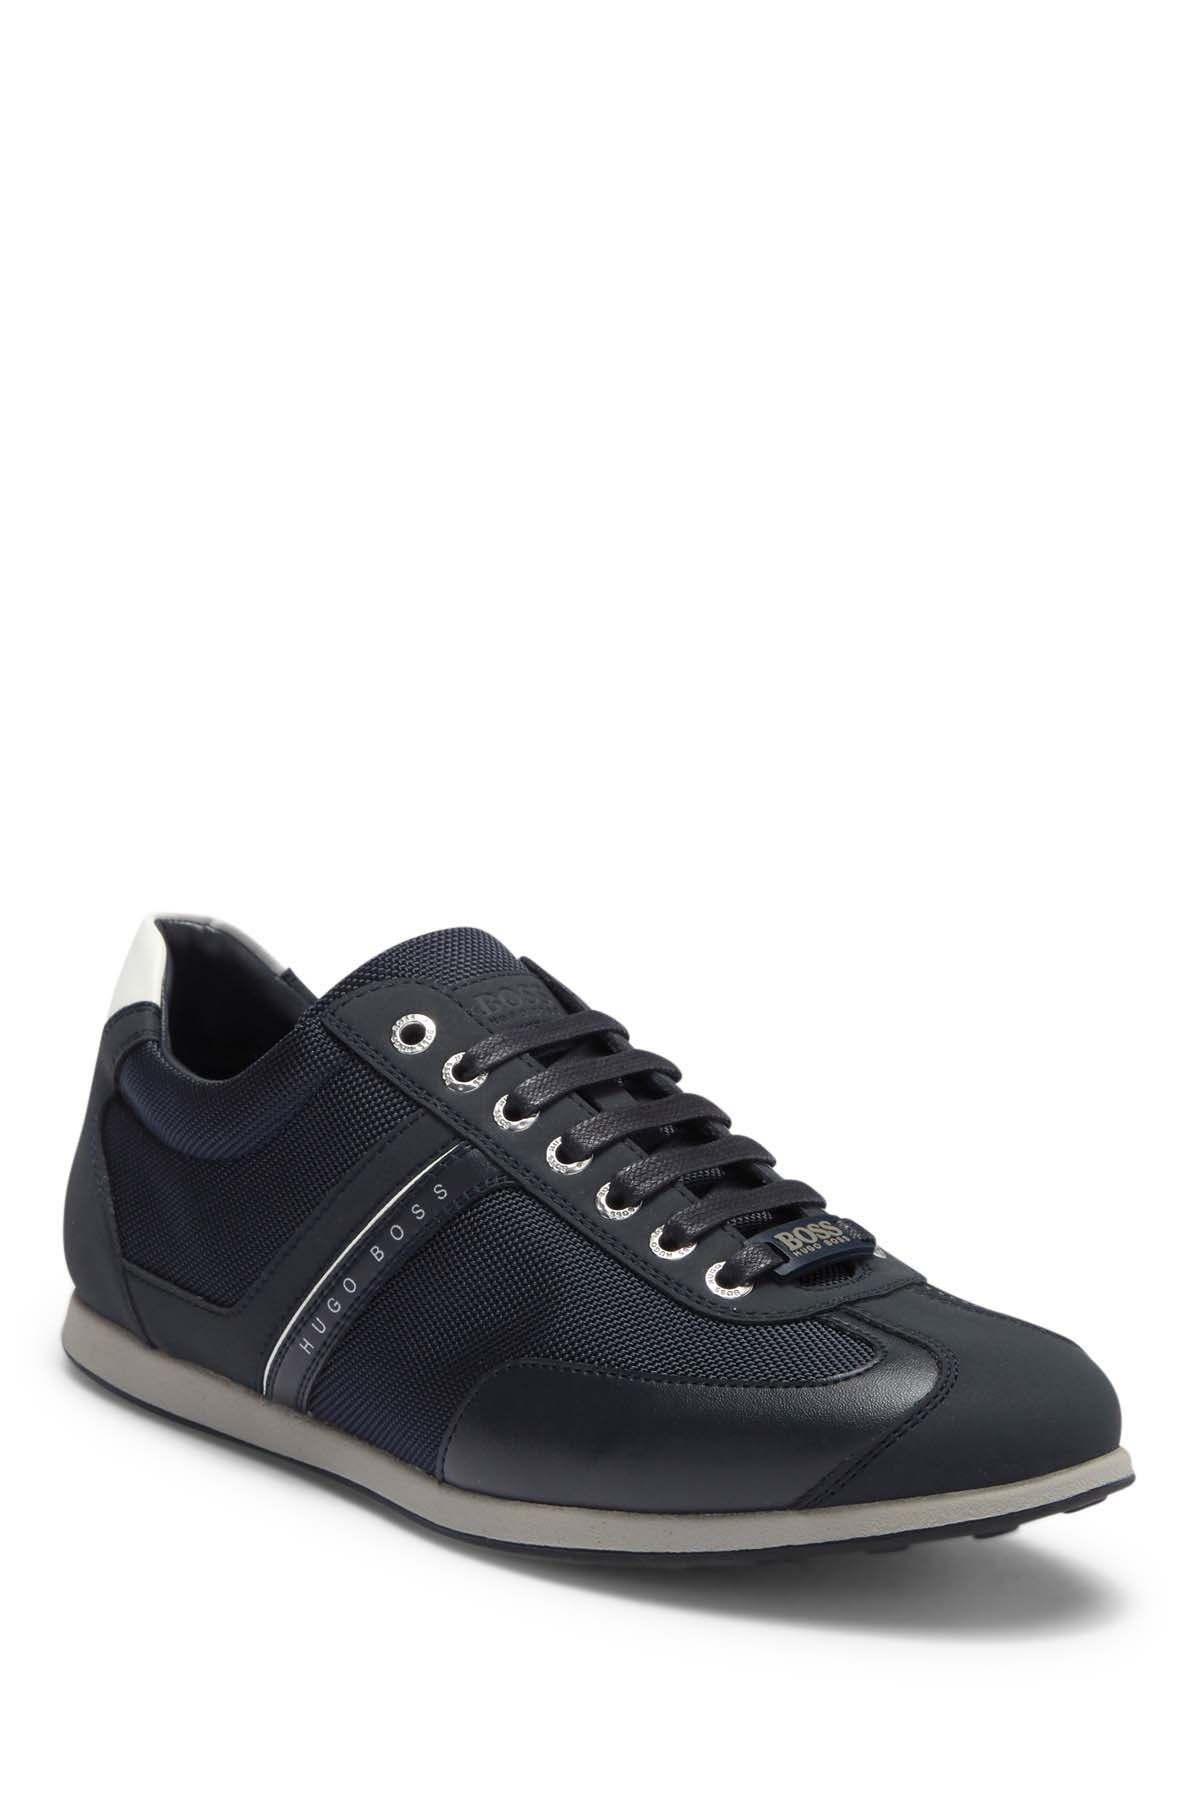 Image of BOSS Space Low Top Mix Media Sneaker